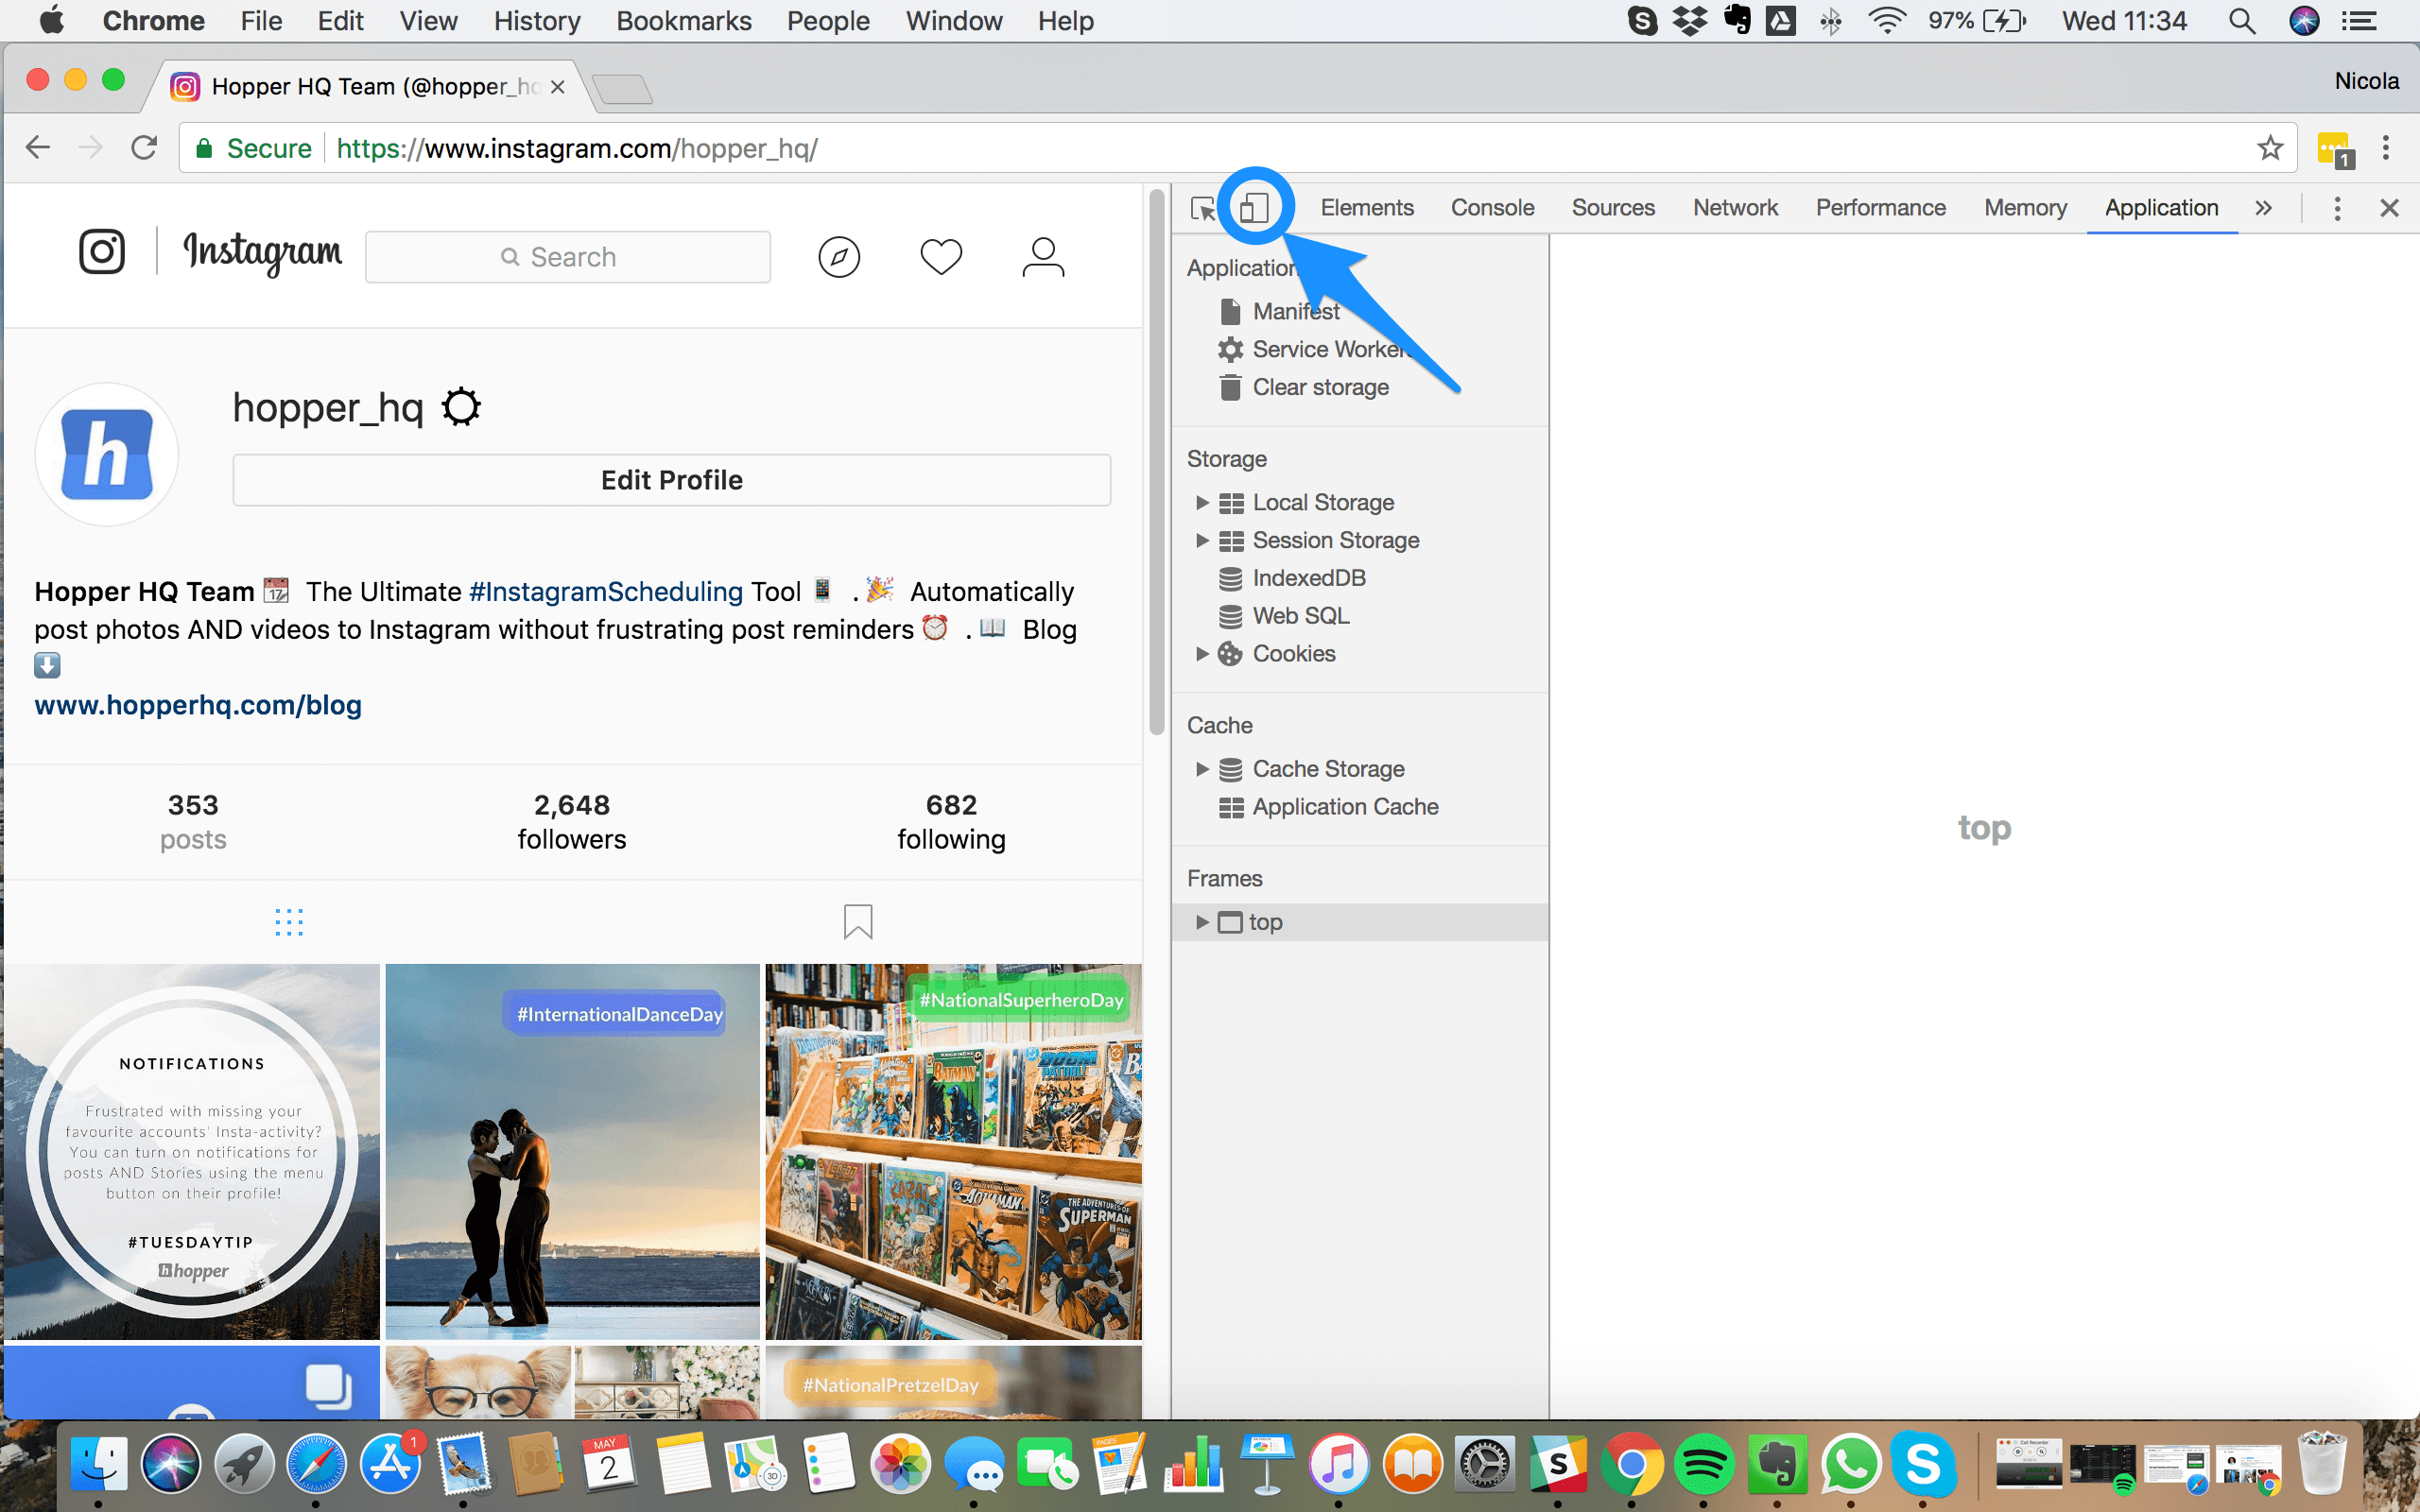 How To Post To Instagram From PC or Mac - A Complete Guide